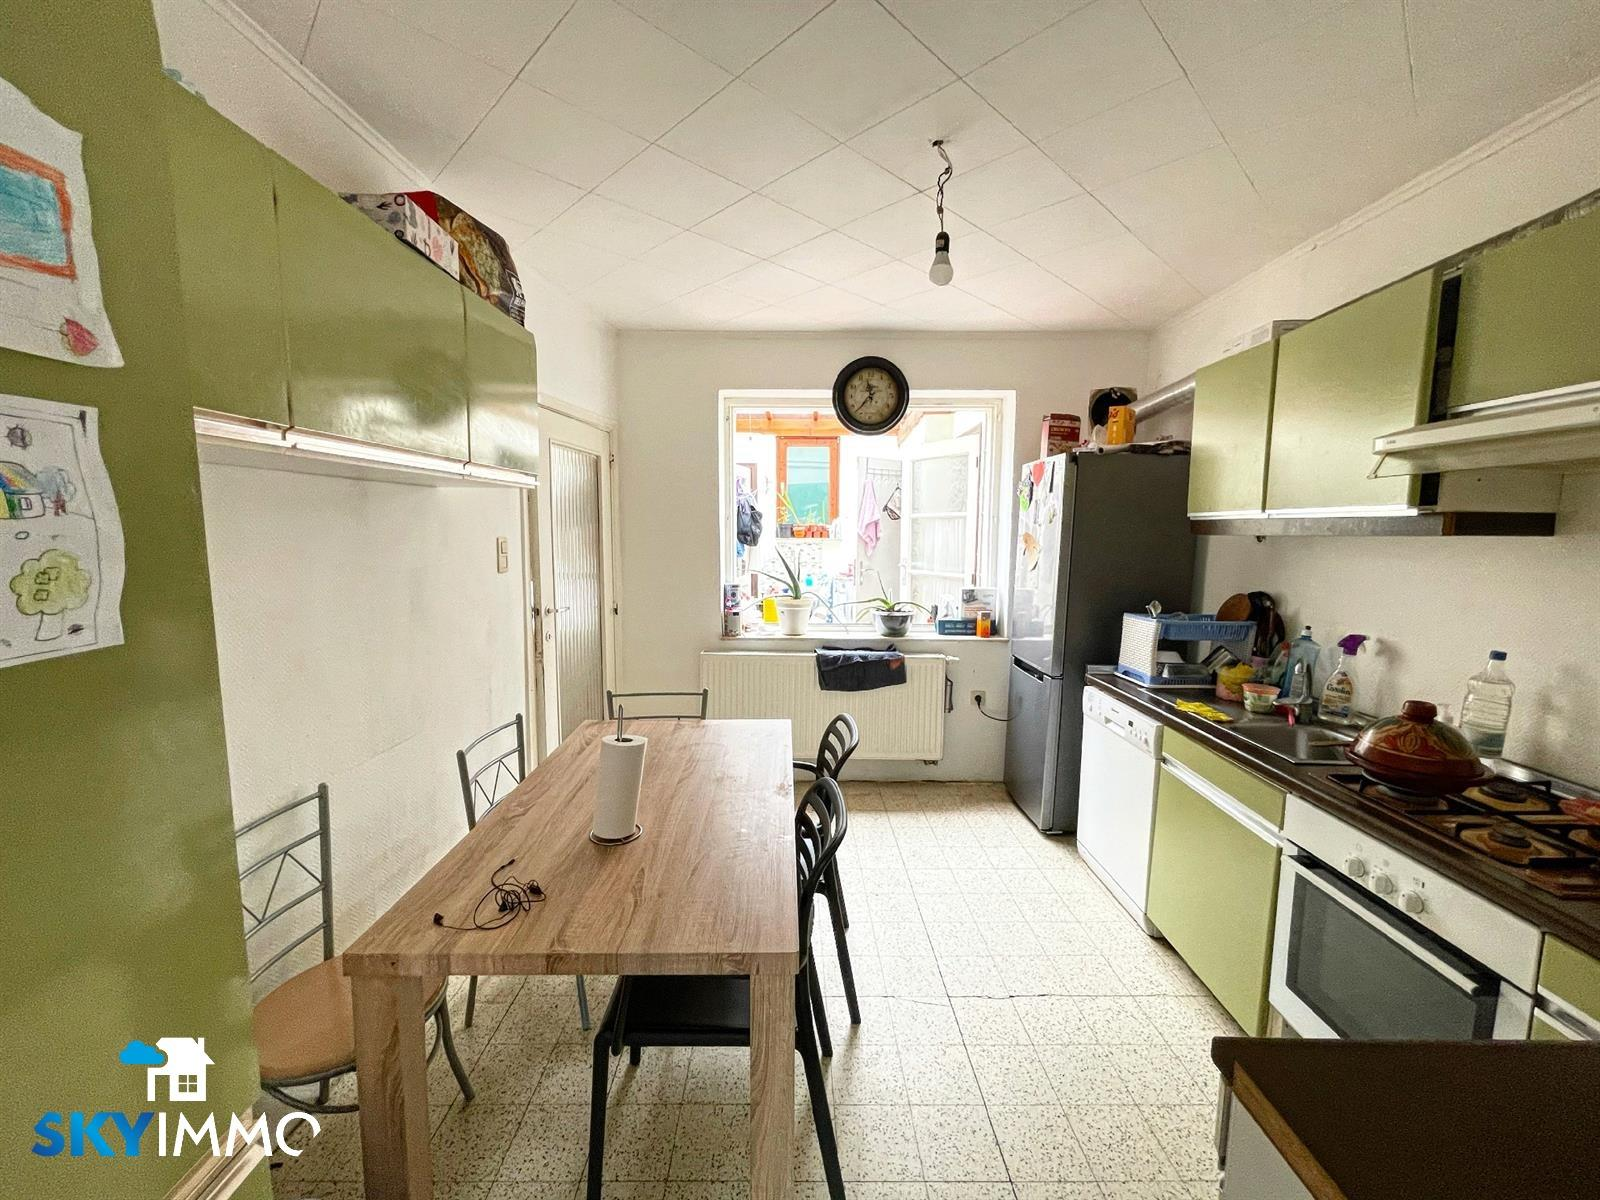 Huis - Flemalle - #4366715-3